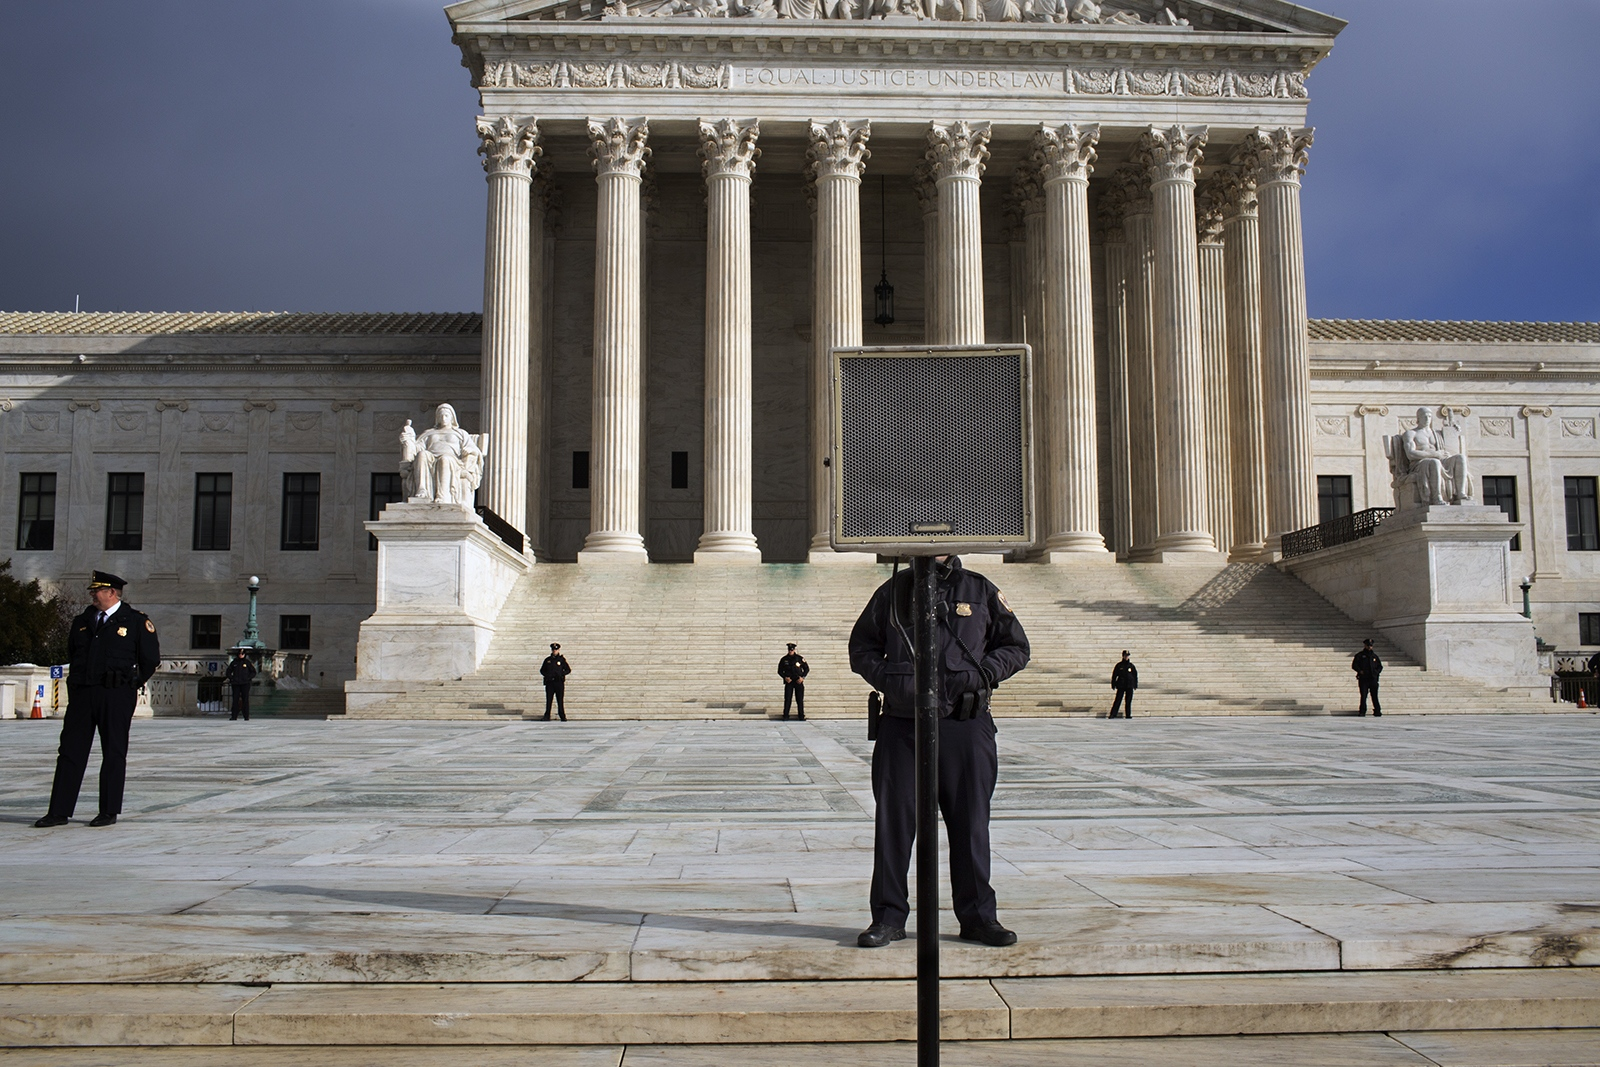 The Supreme Court Police prepare for the people taking part of the 2019 March for Life to arrive on January 19th.